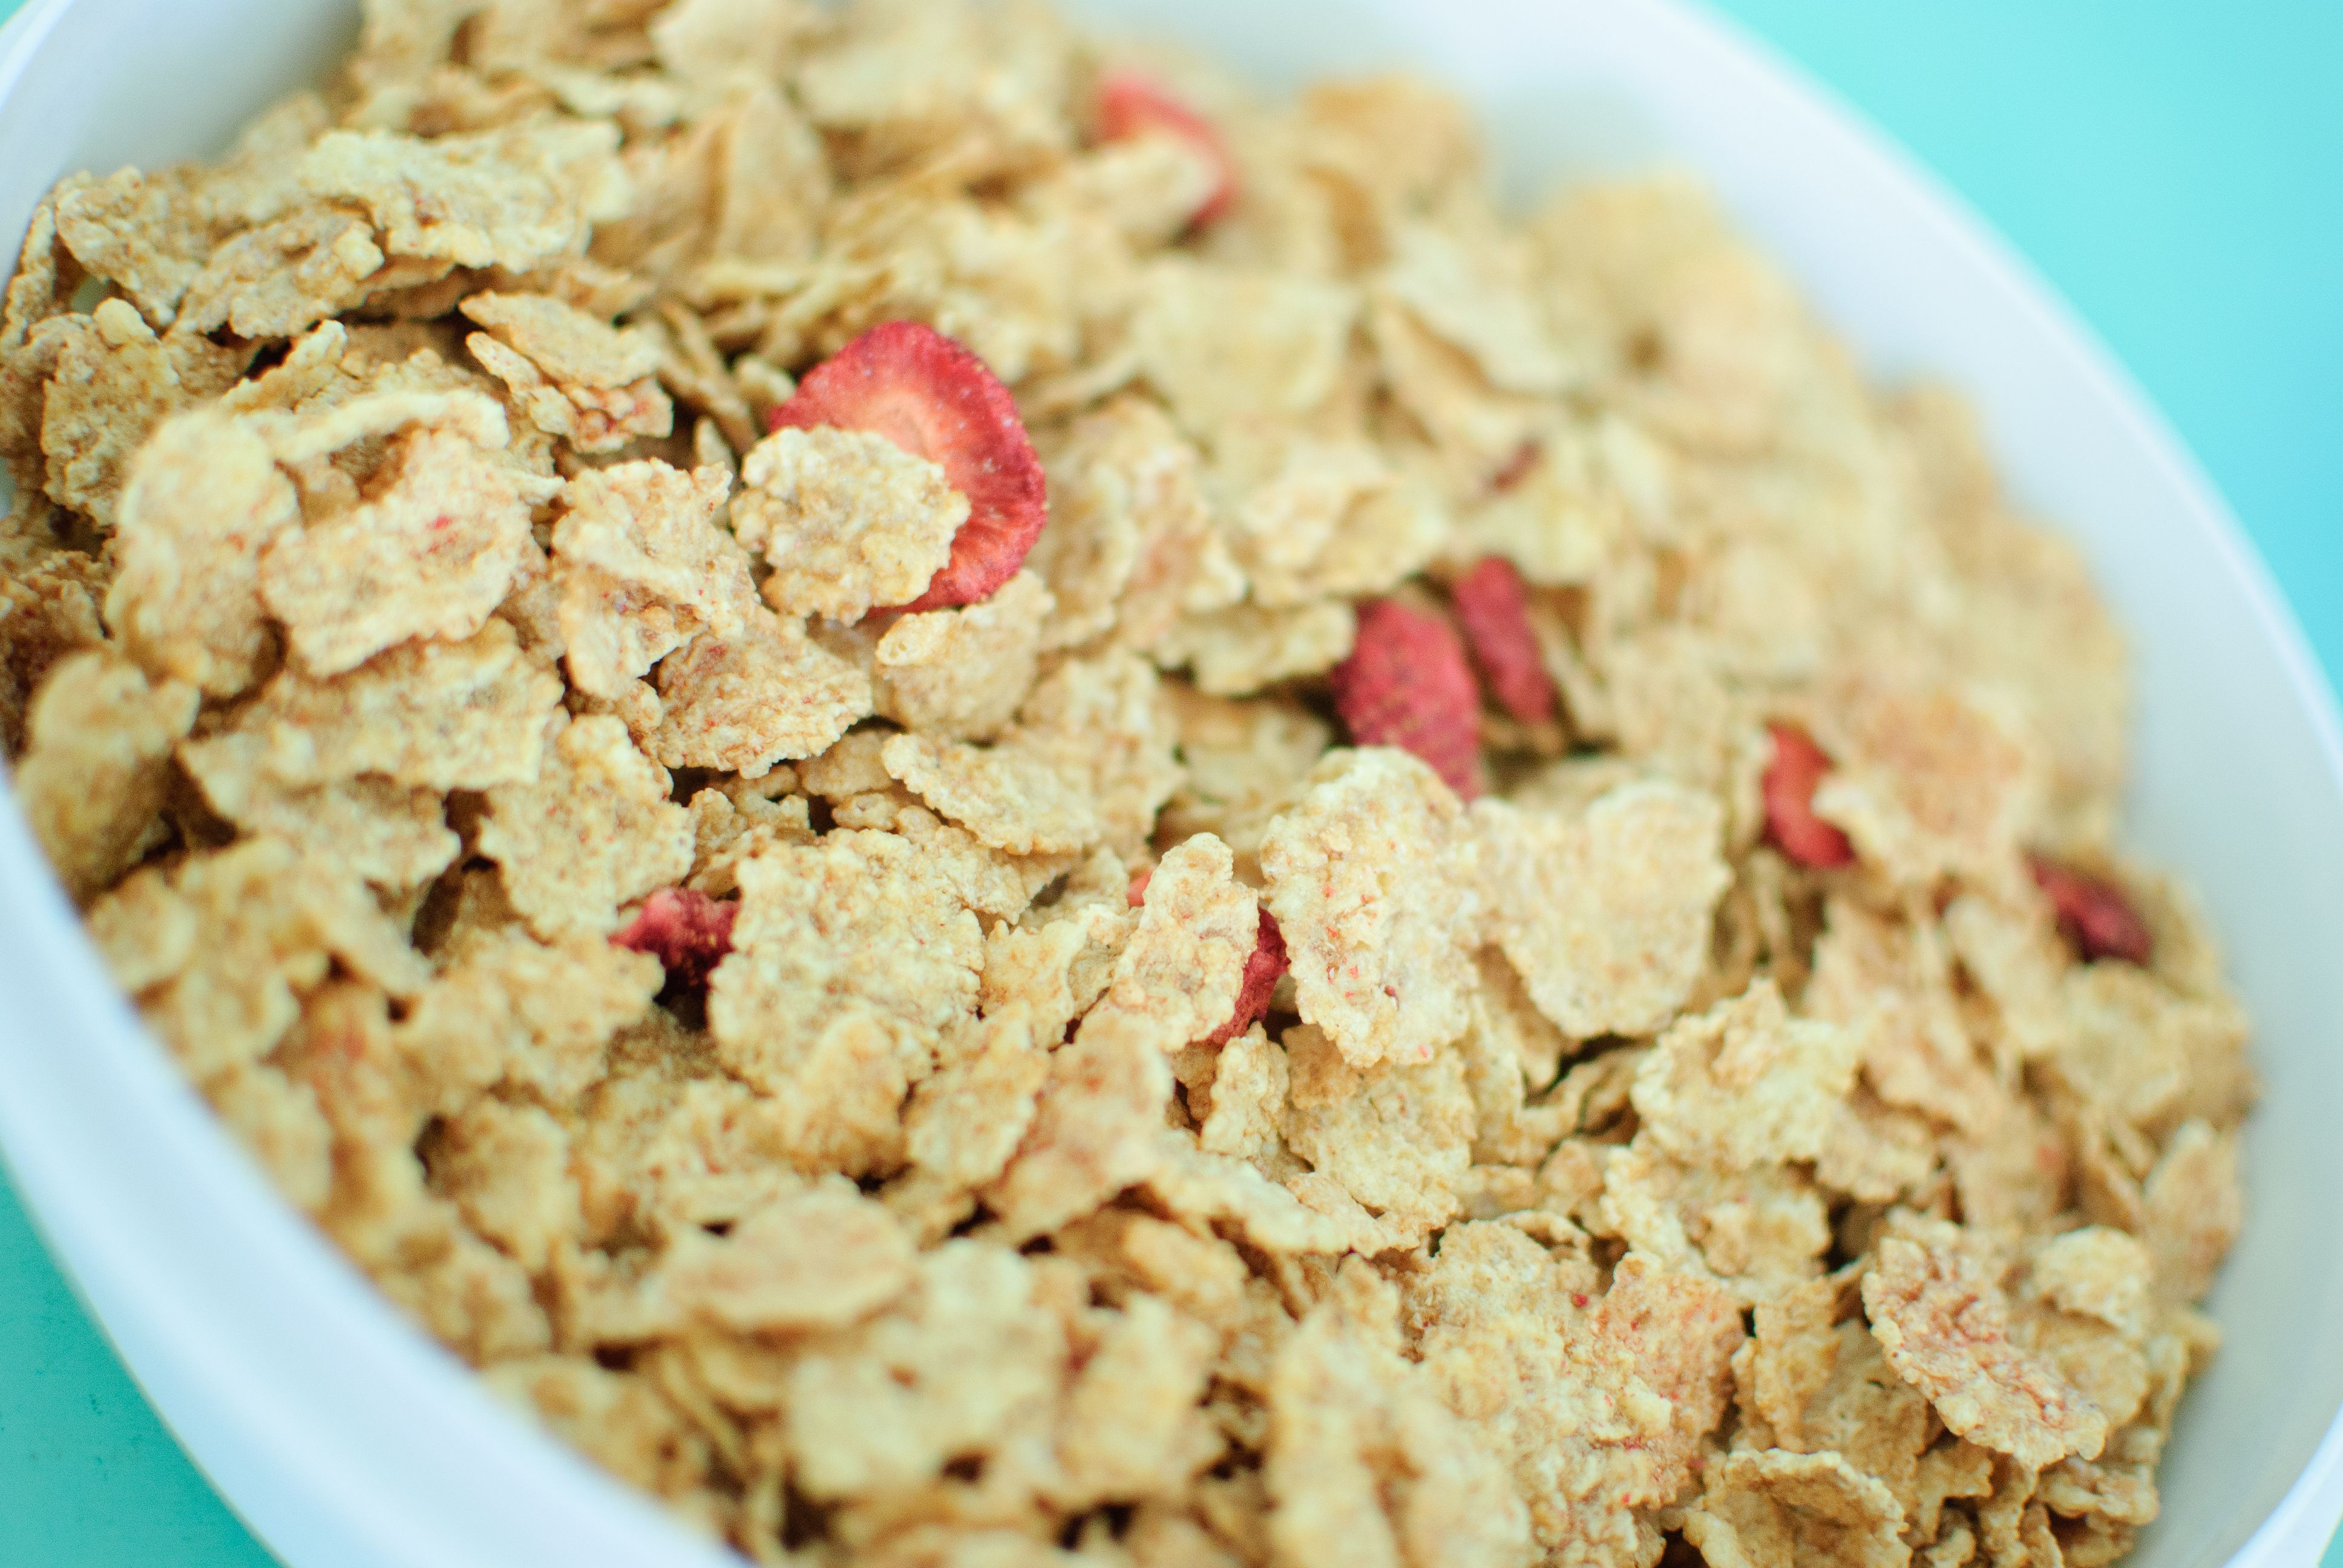 Make your own homemade cereal homemade cereal cereal and homemade how to make your own homemade cereal in 10 steps ccuart Gallery